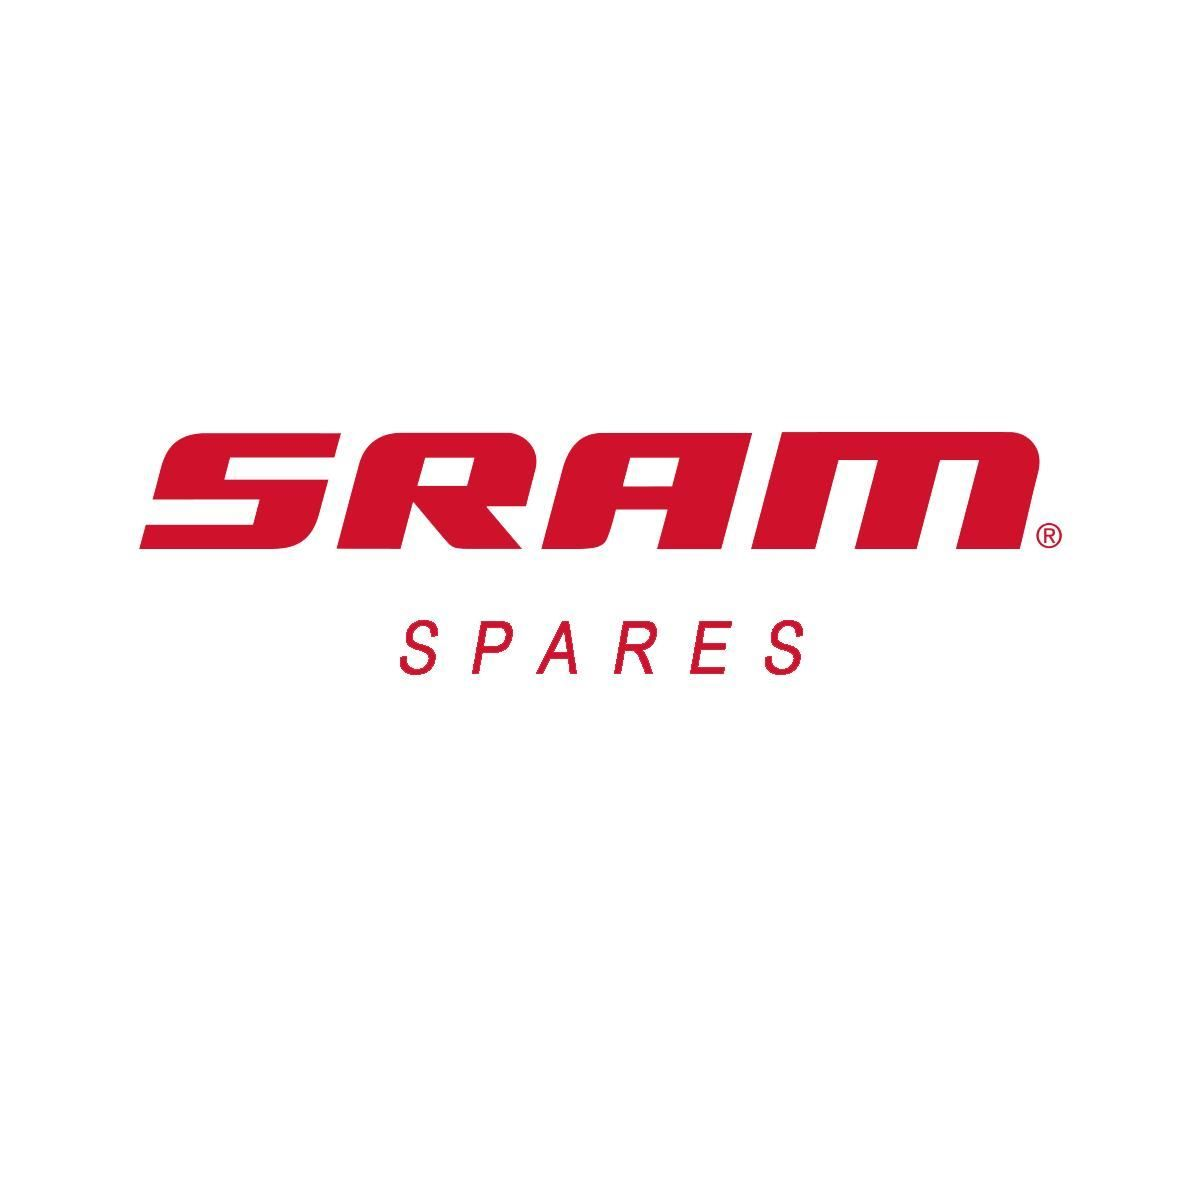 Sram Slickwire Xl Road Brake Cable Kit Black 5Mm (1X 1350Mm, 1X 2750Mm 1.6Mm Coated Cables, 5Mm Kevlar® Reinforced Compression-Free Housing, Ferrules, End Caps, Frame Protectors):